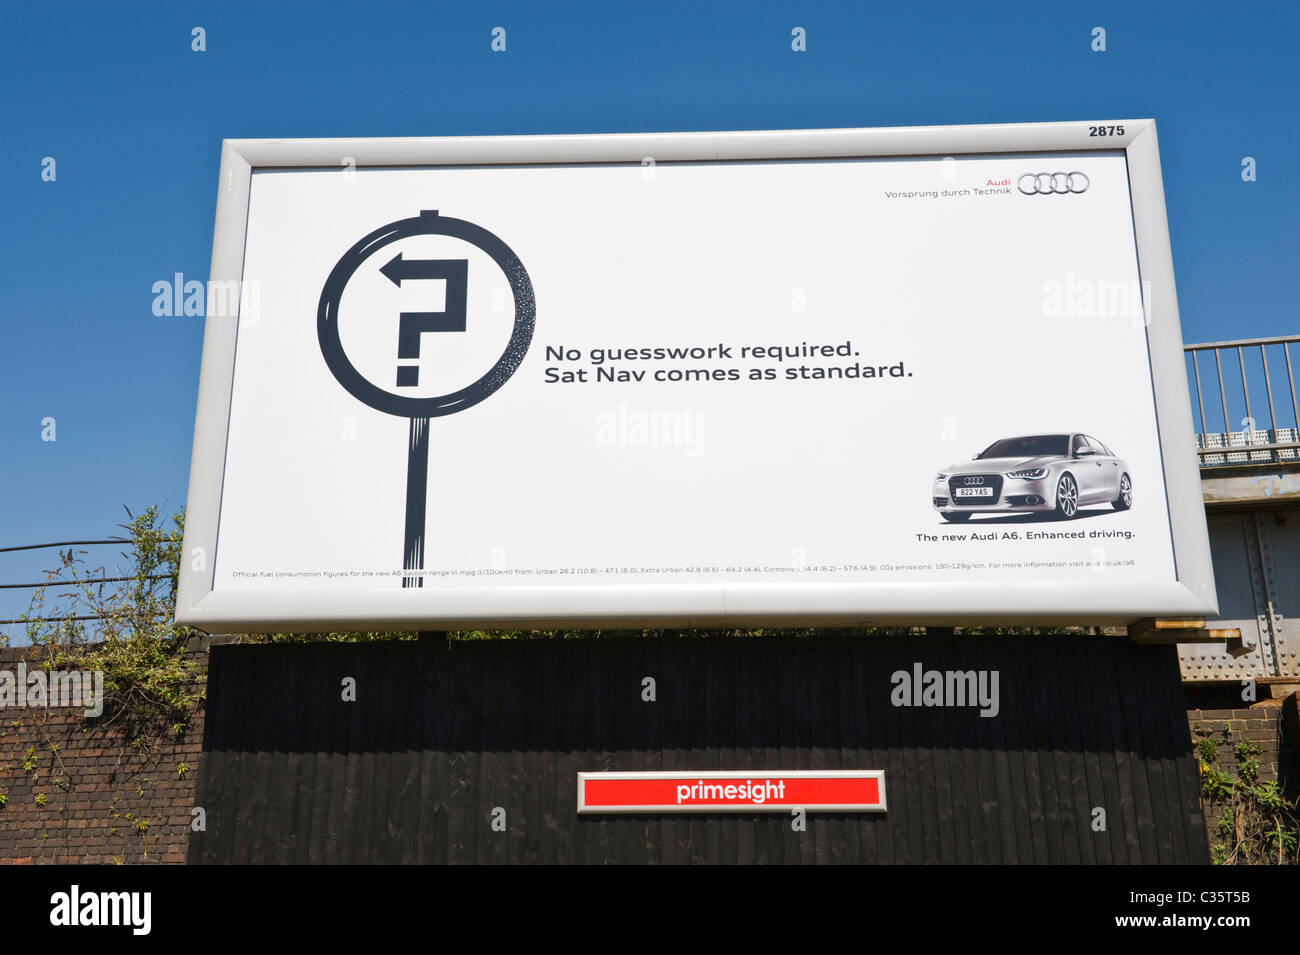 Advertising billboard on PRIMESIGHT site advert for AUDI A6 with Sat Nav - Stock Image